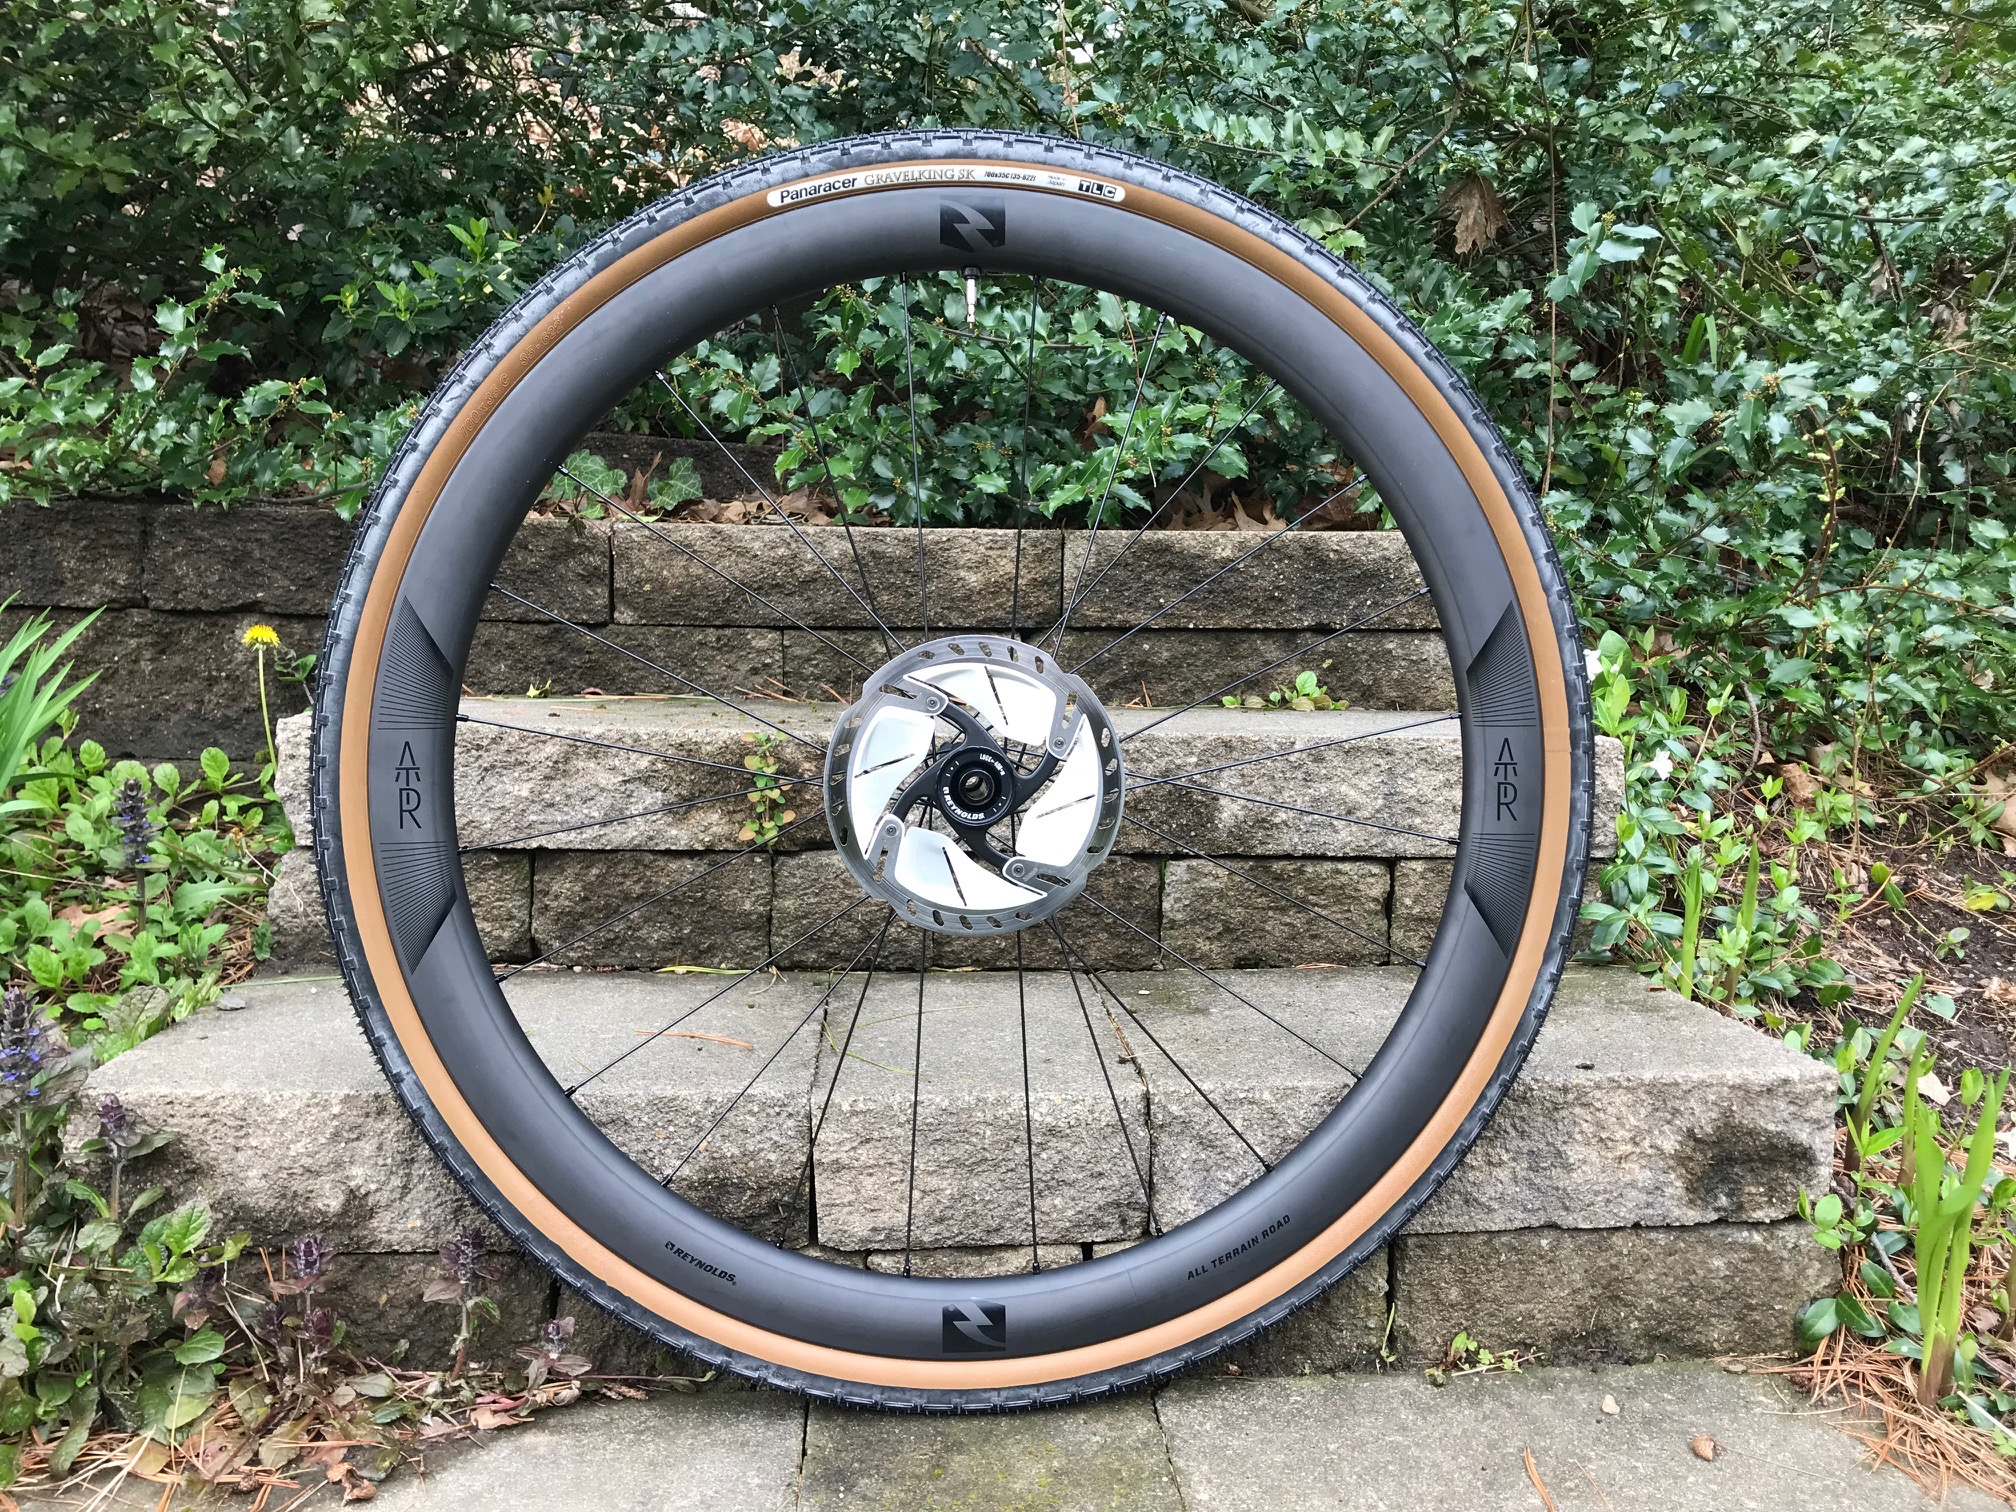 REYNOLDS ATR X GRAVEL WHEELS